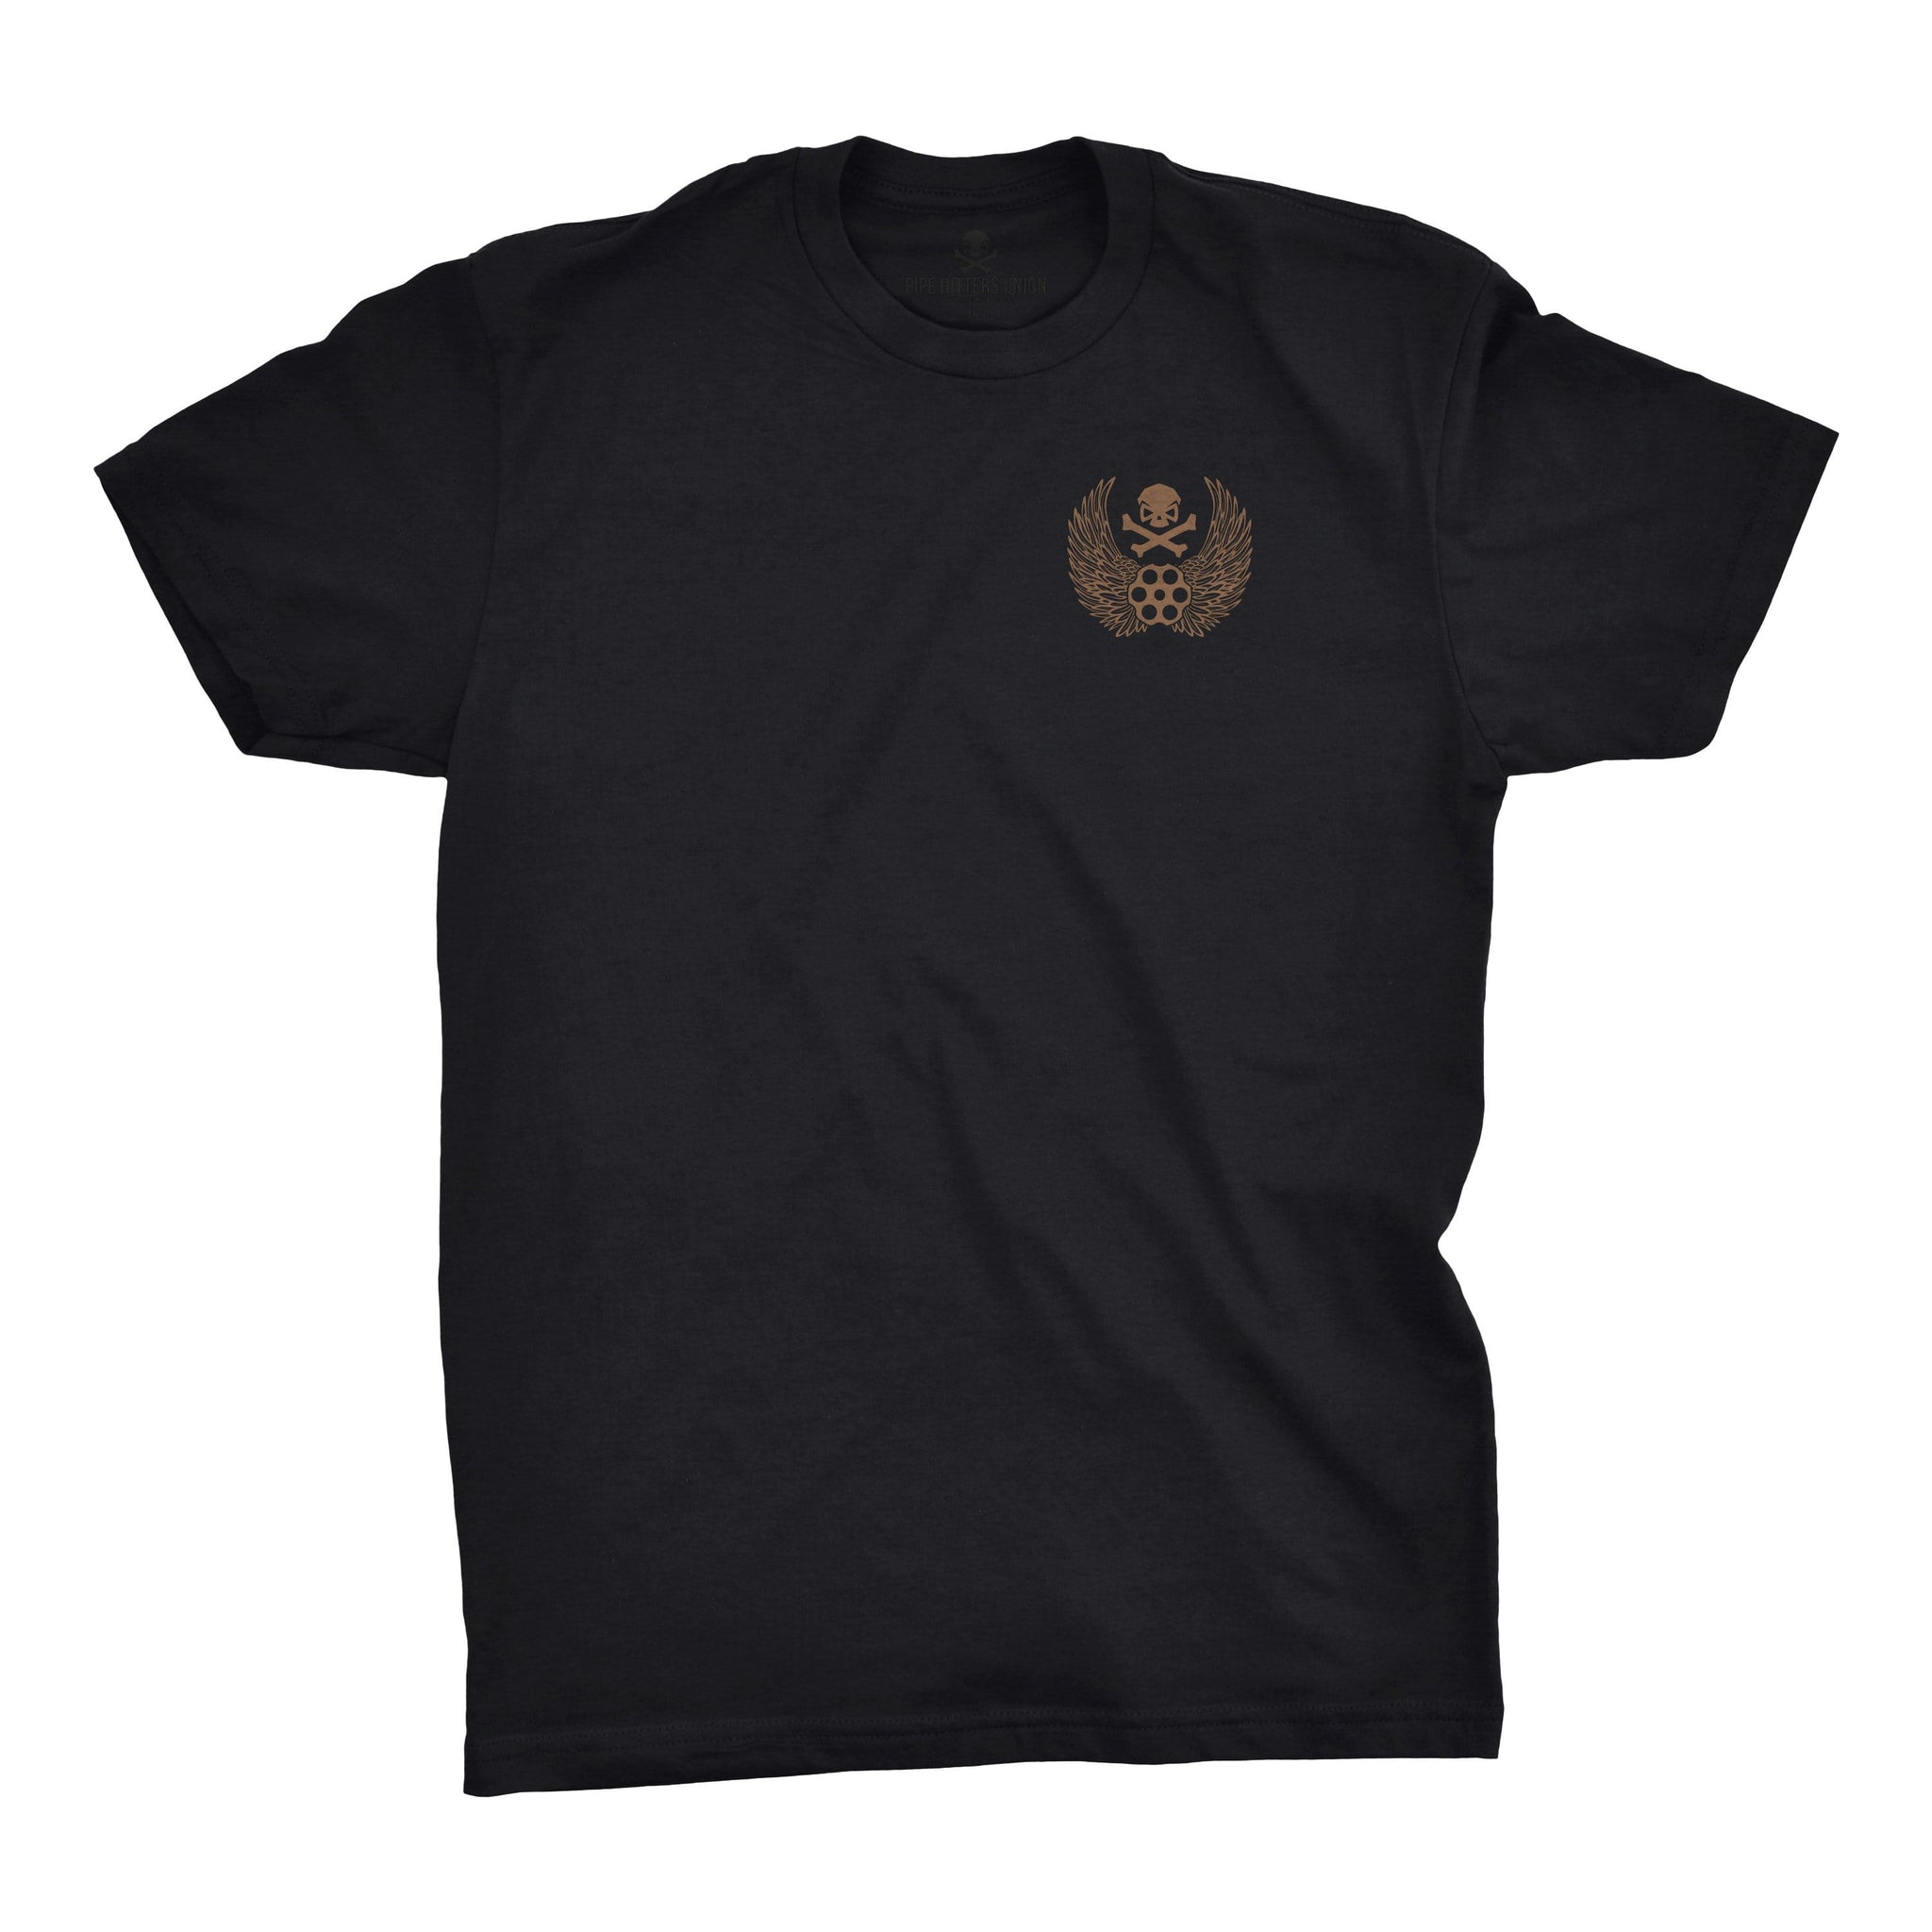 PHUMC Peacemakers Chapter Tee - Black - T-Shirts - Pipe Hitters Union